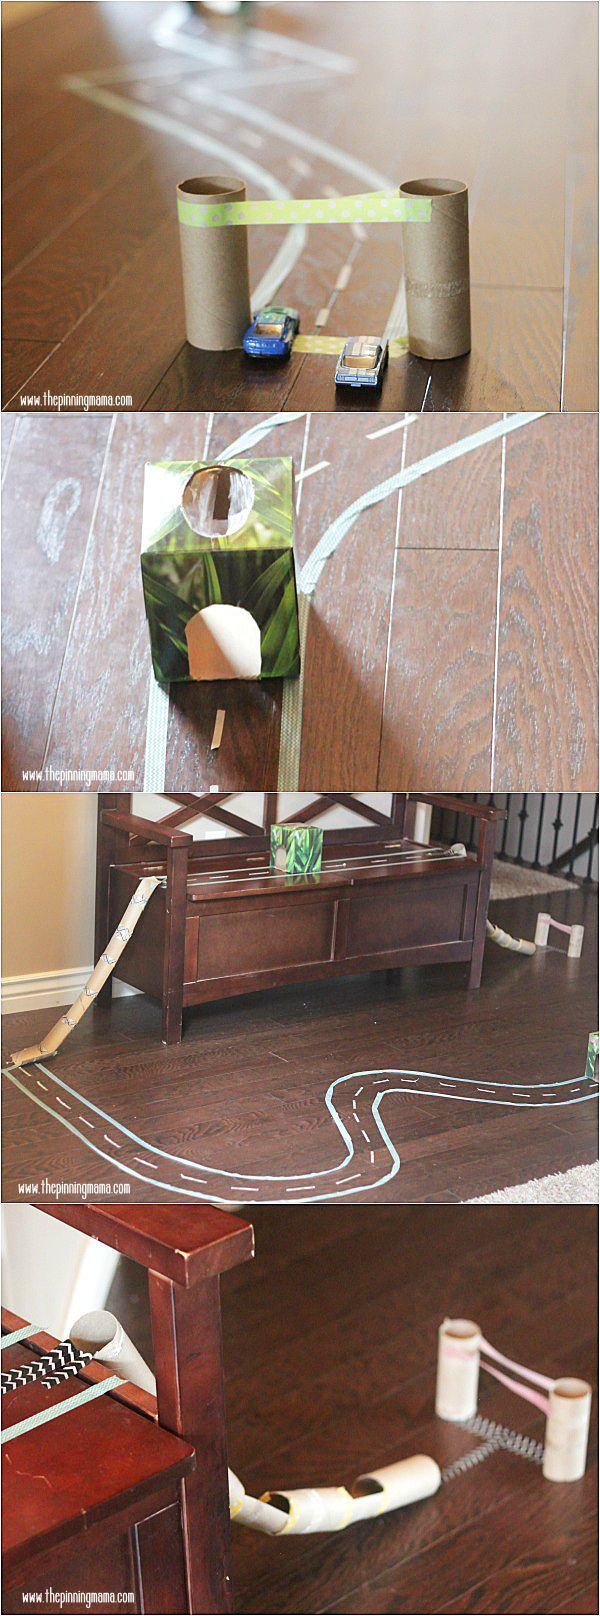 LOVE this! Make a race track for your kids out of washi tape and old toilet paper tubes. This is so perfect for when it gets cold and we have to stay inside!  Click for FULL Materials list and step by step instructions!  #caretorecycle sponsored